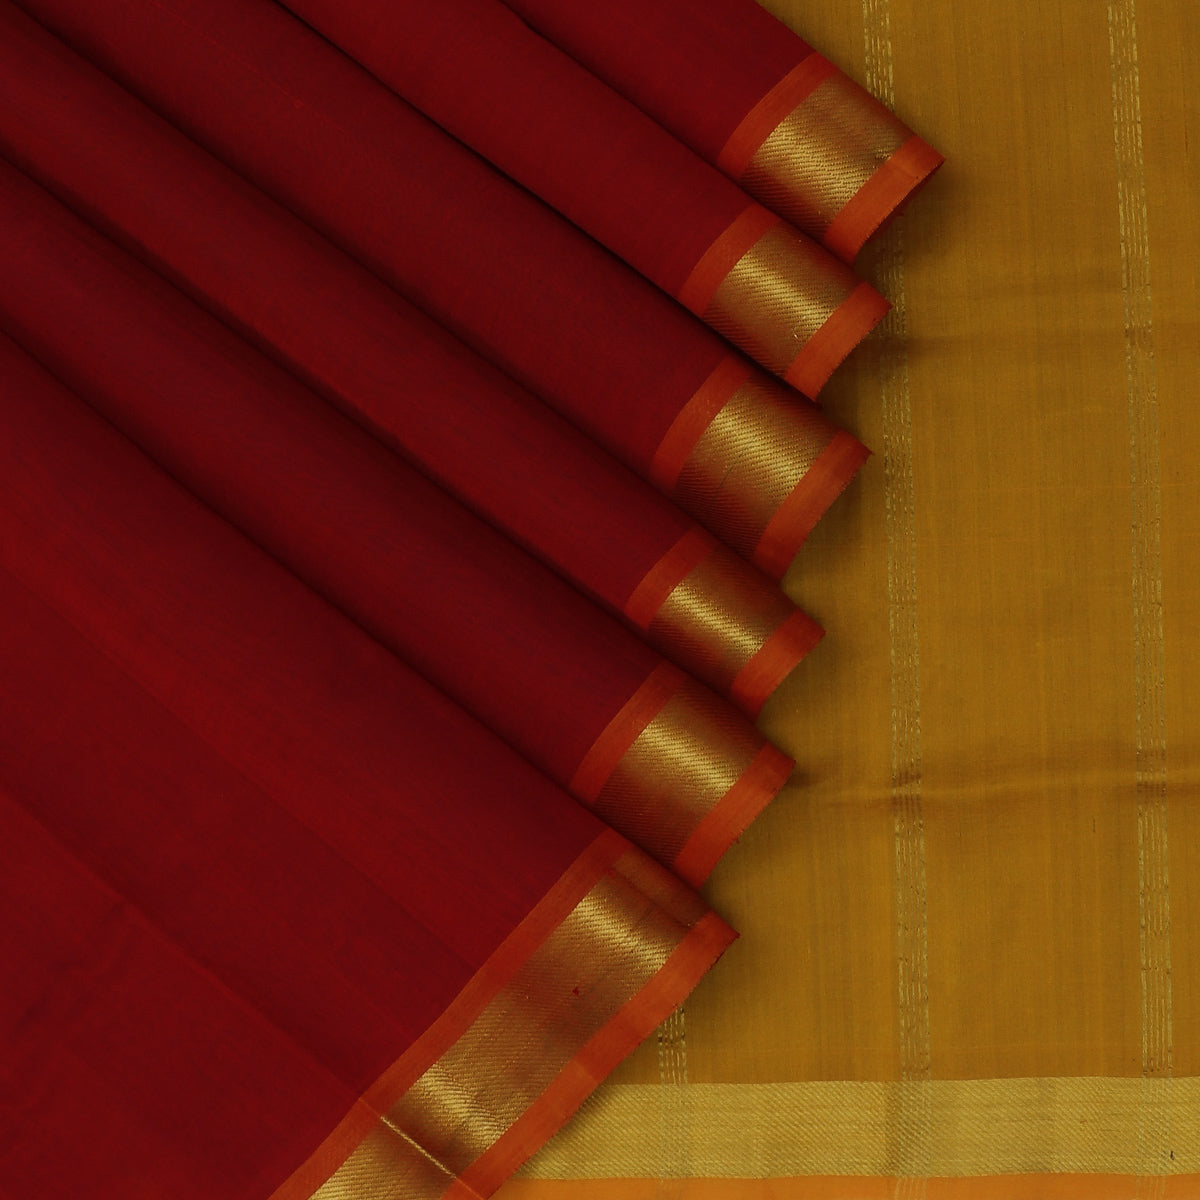 Silk Cotton Saree-Maroon and Mustard with Zari border